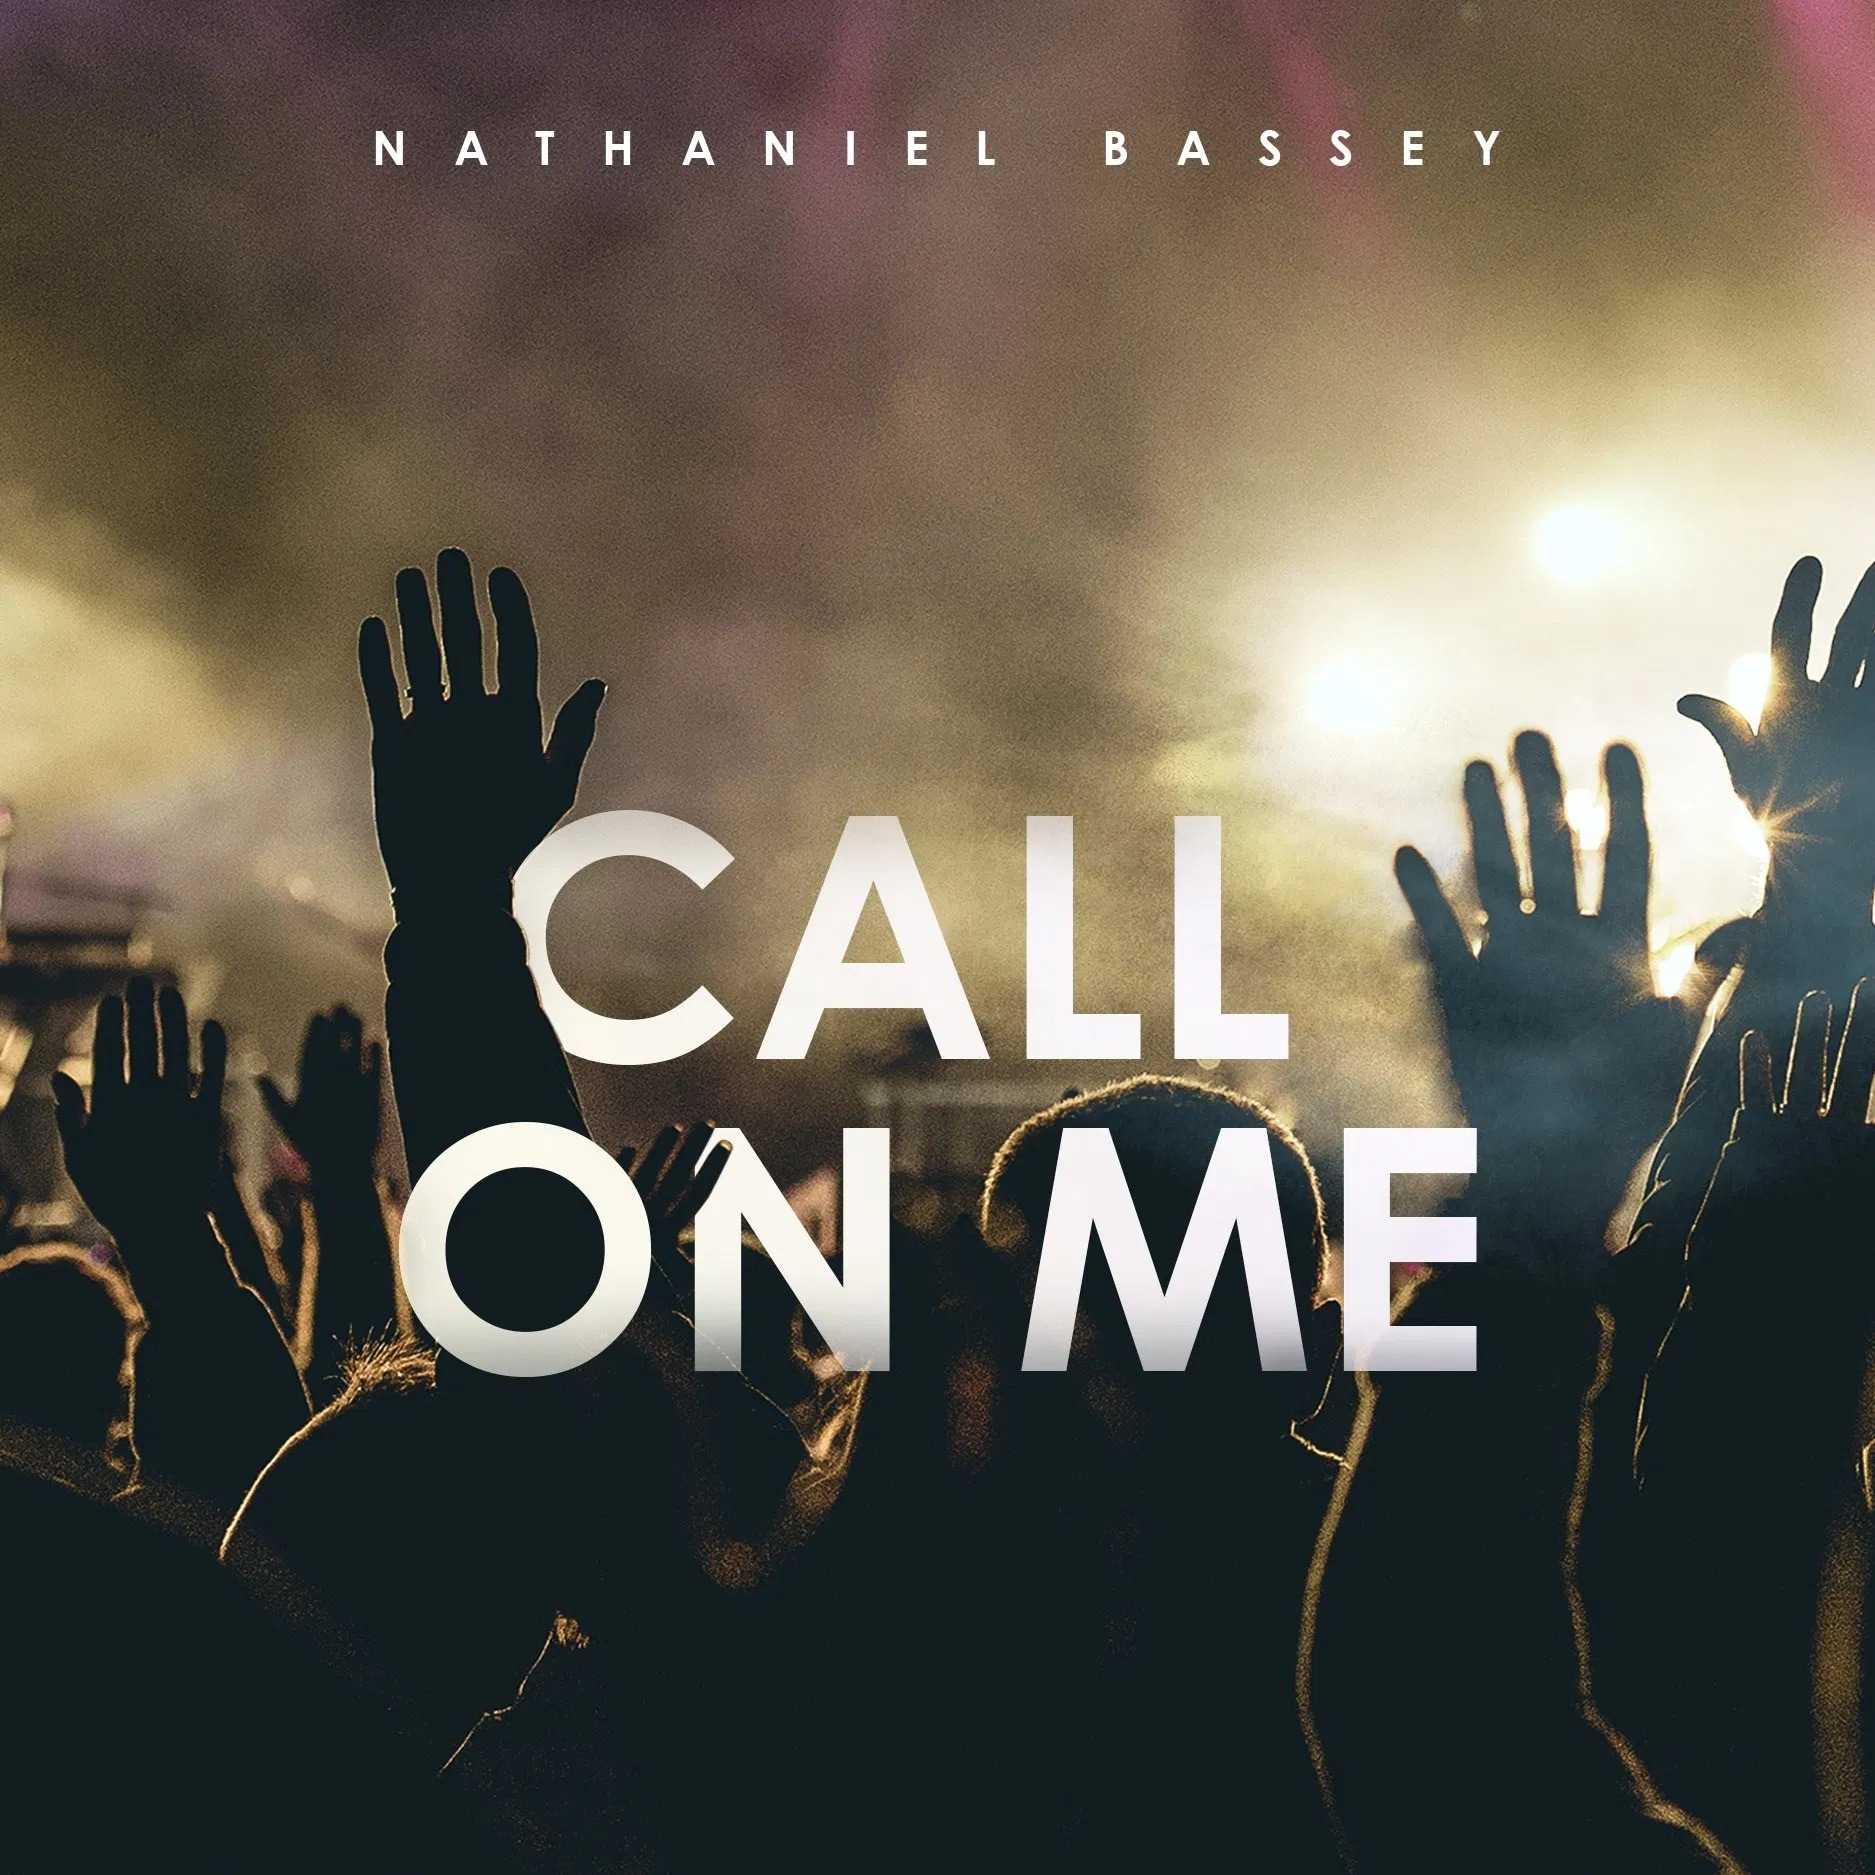 call on me video download free